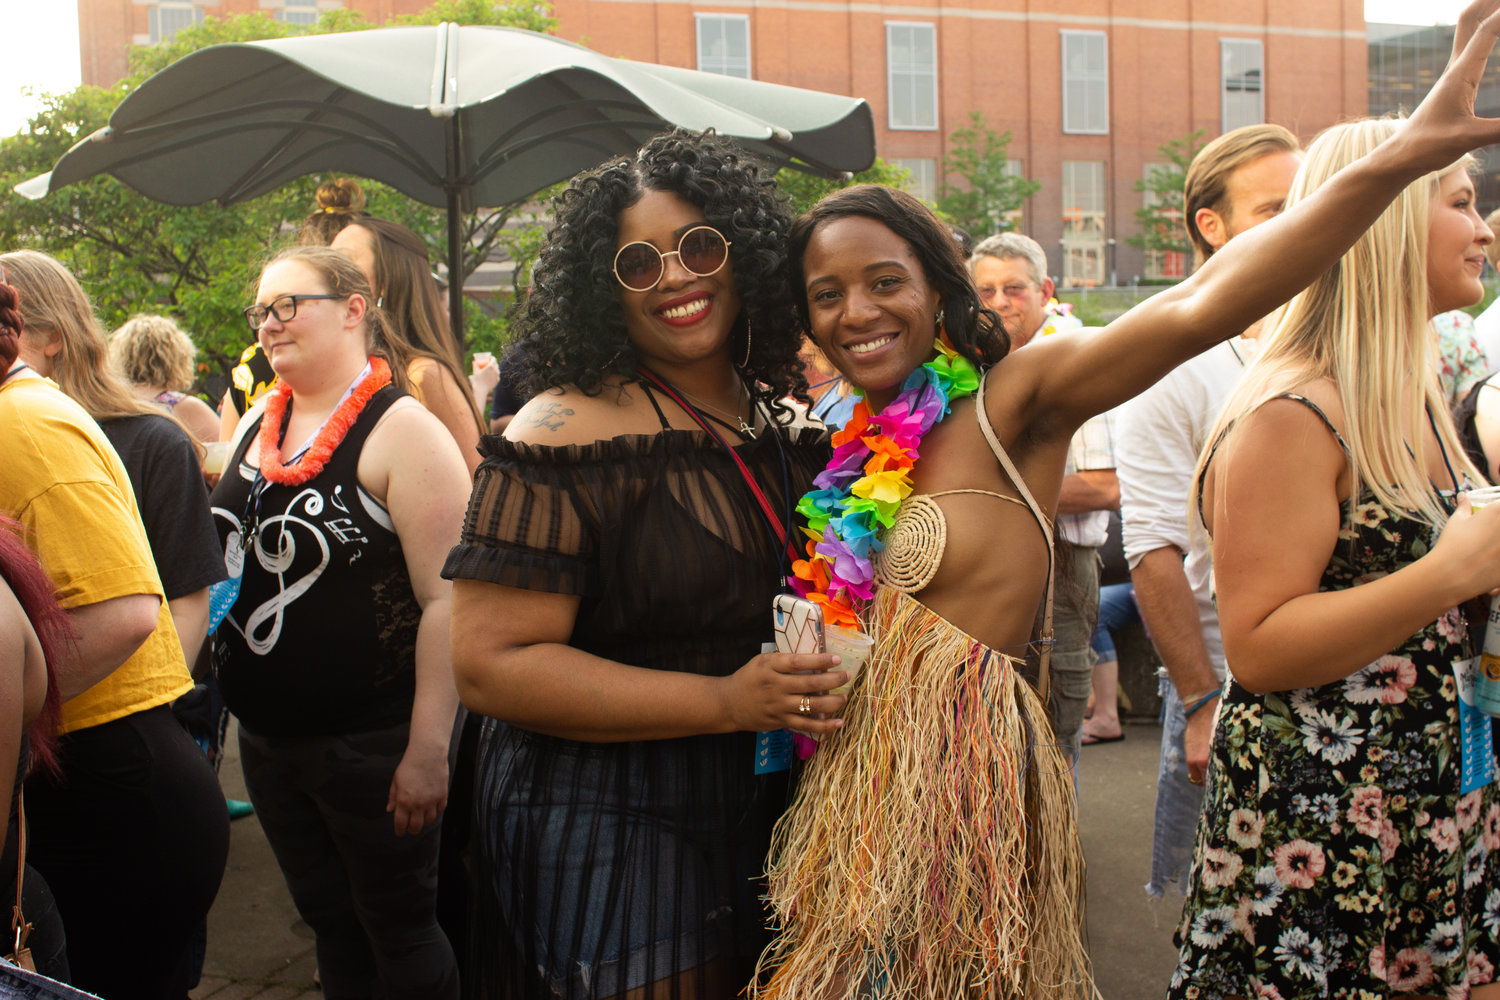 Sisters, Devontay and Johnell Clark, show off their individual take on beach party attire.